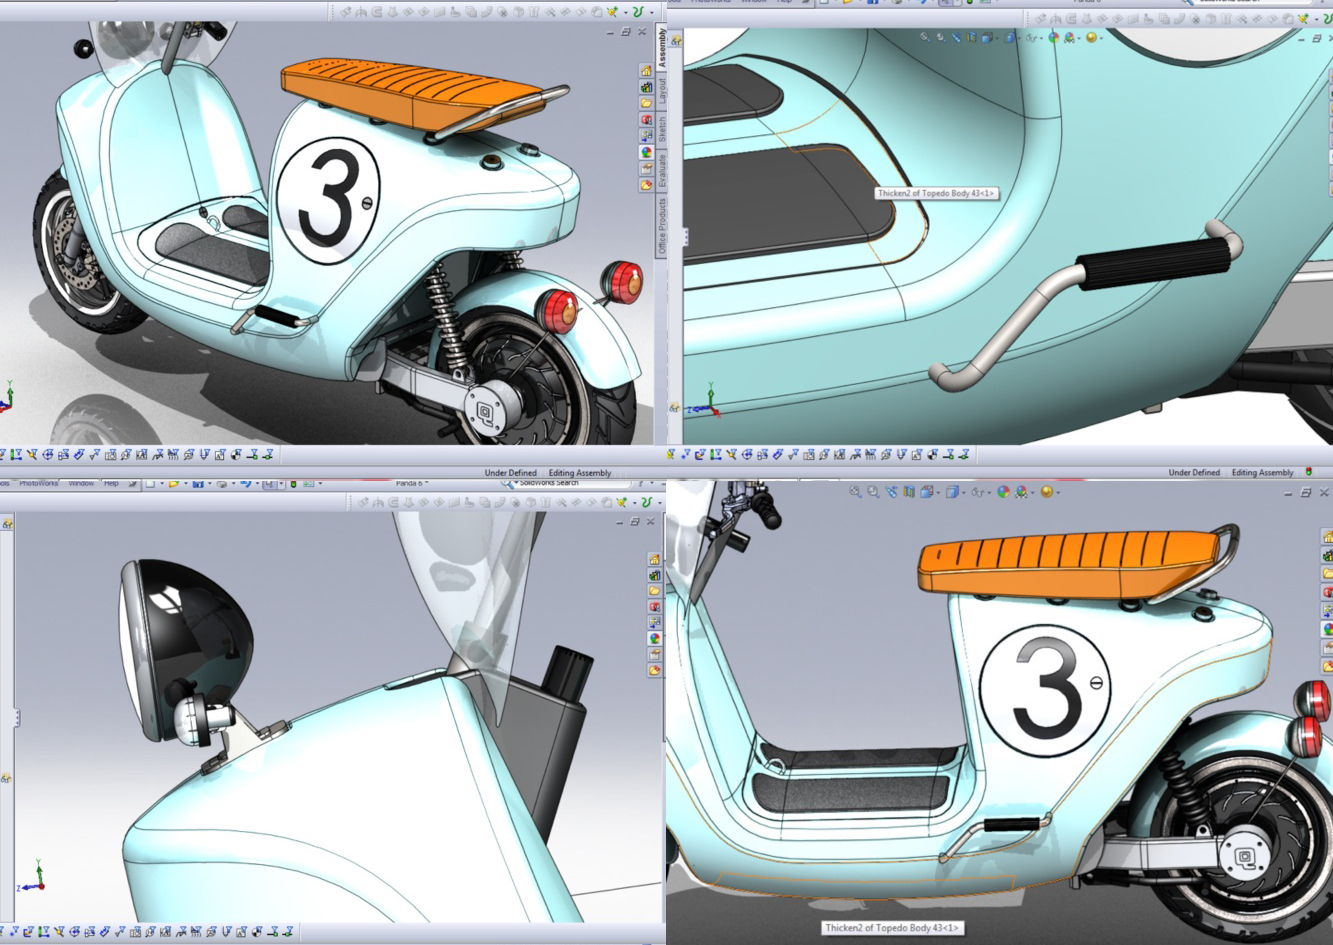 Waarmakers_Biosbased_Electric_Scooter_Design_Process_CAD_Model_3_copy.jpg